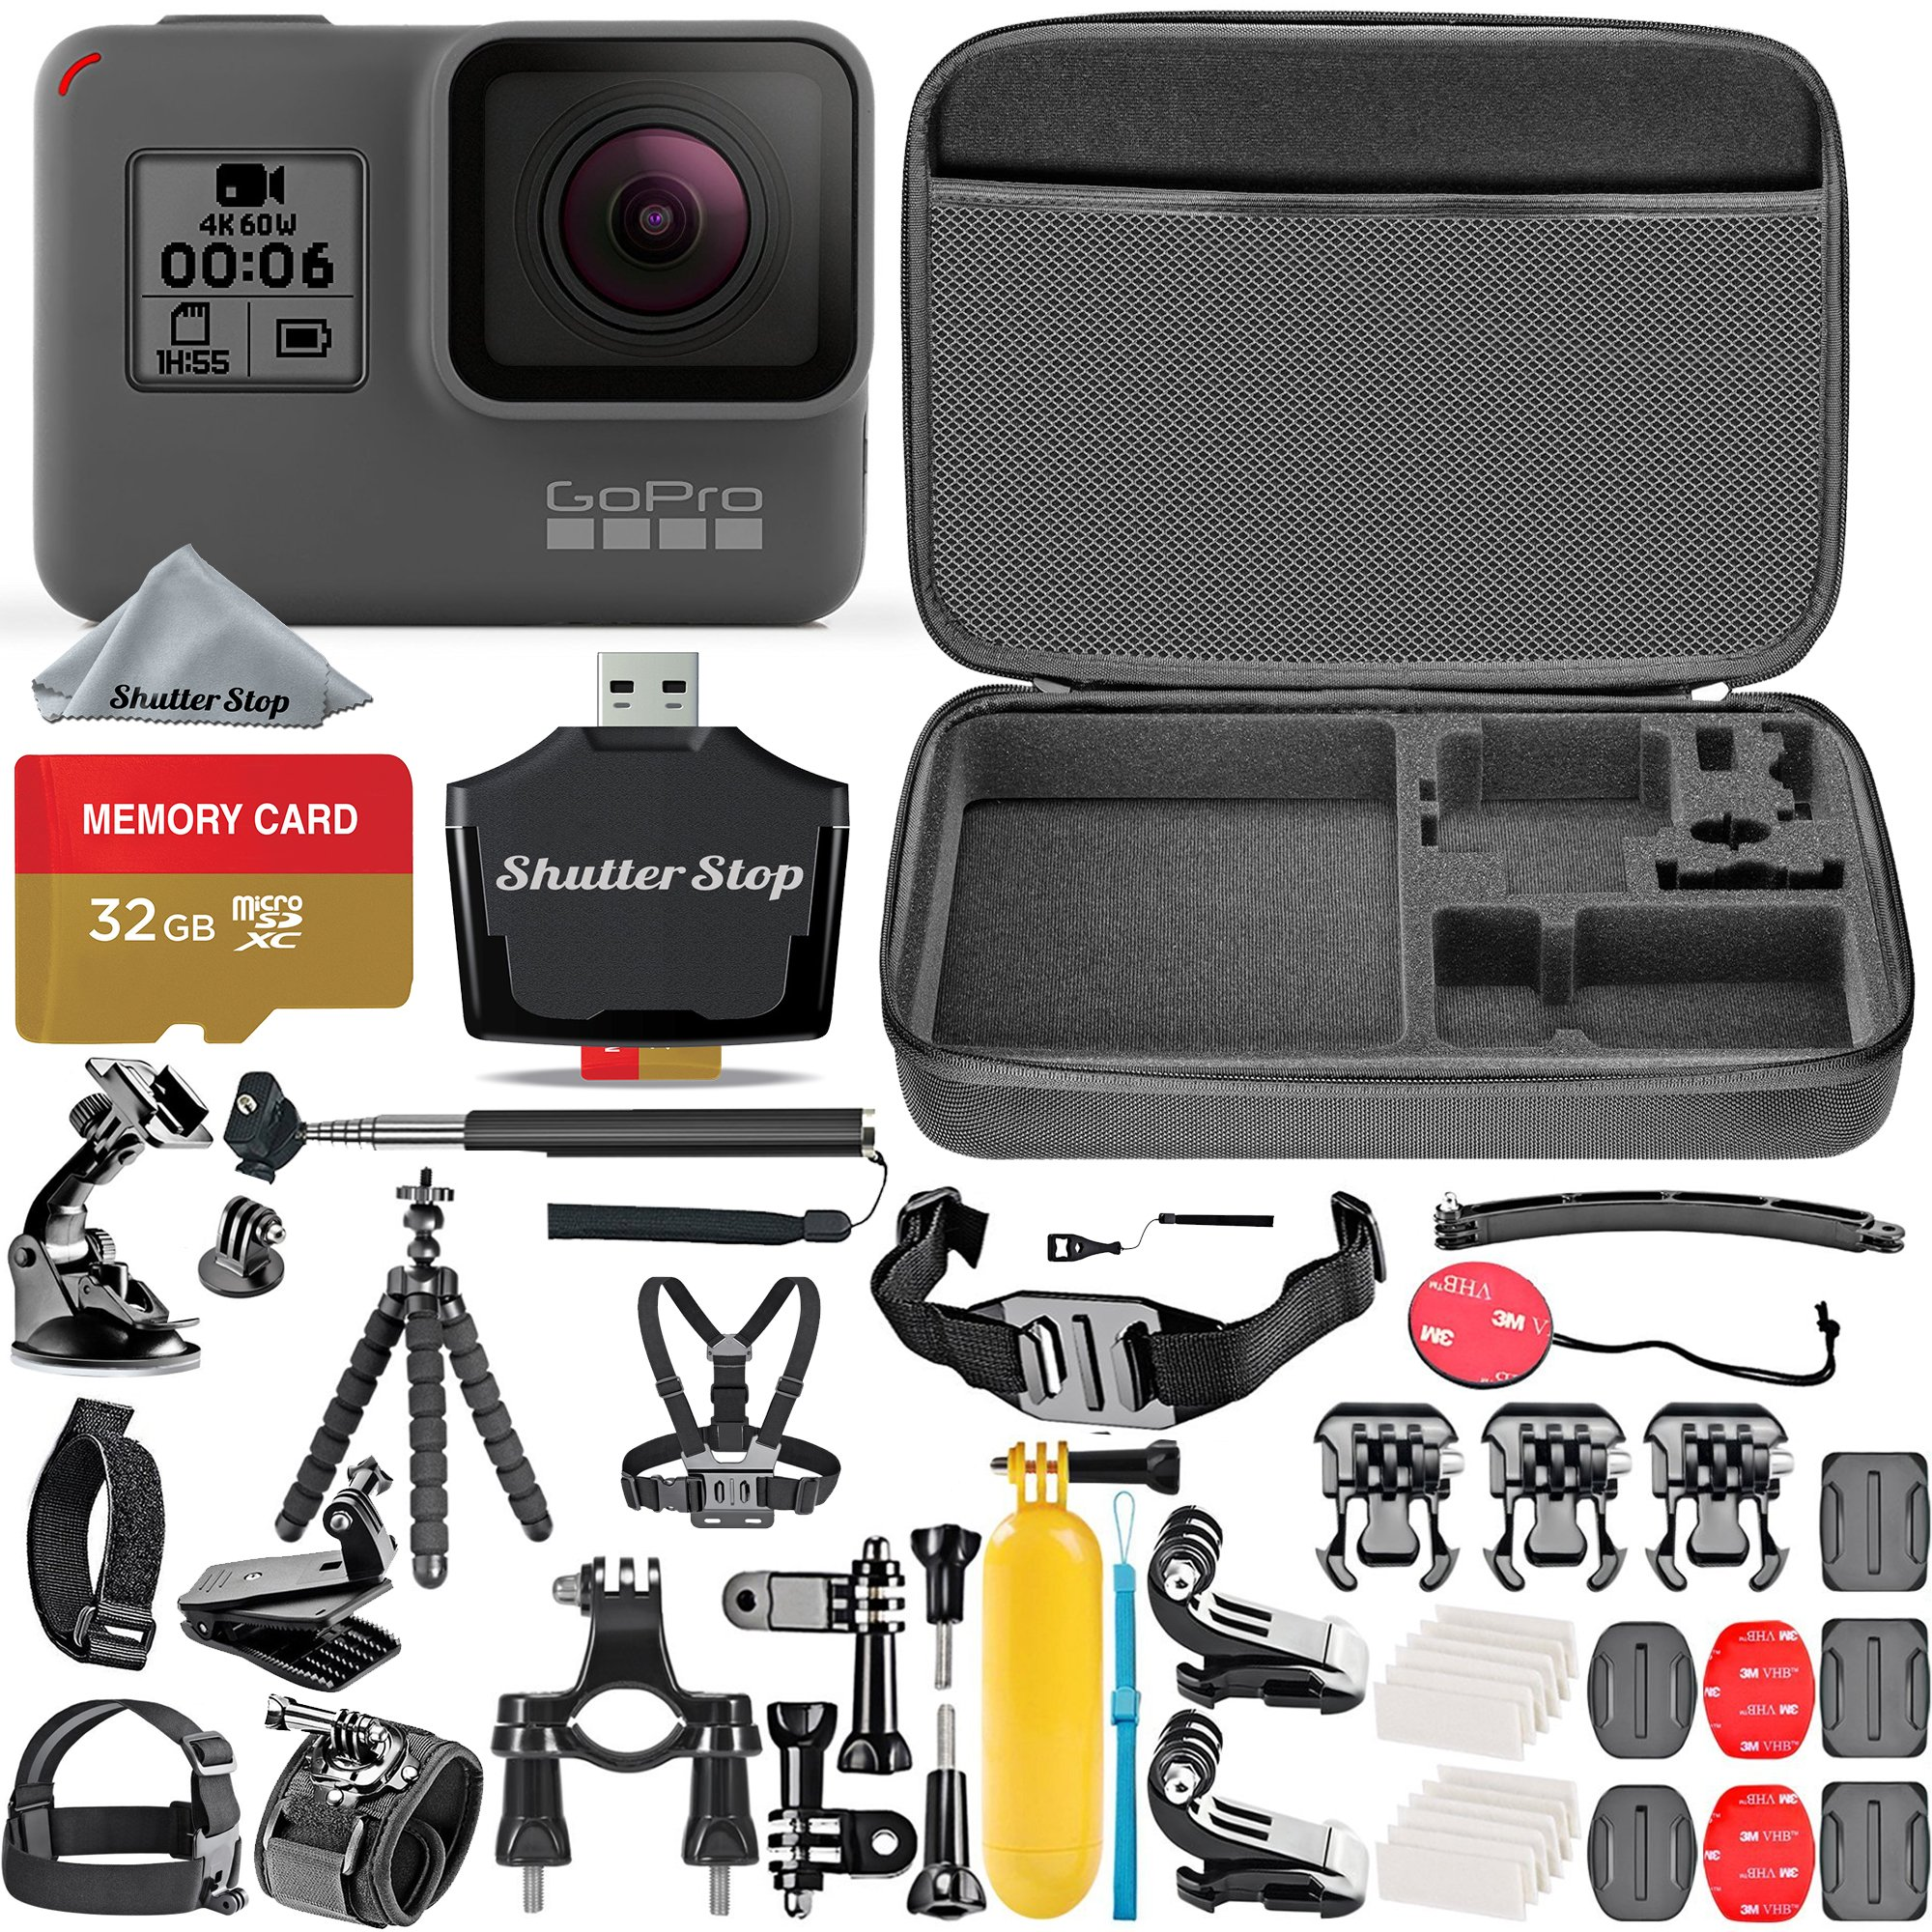 GoPro HERO5 Black + 32GB Memory Card + Hard Case + Card Reader + Chest Strap Mount + Head Strap Mount + Flexible Tripod + Extendable Monopod + Floating Handle + Hero 5 Best Value Bundle by Shutter Stop